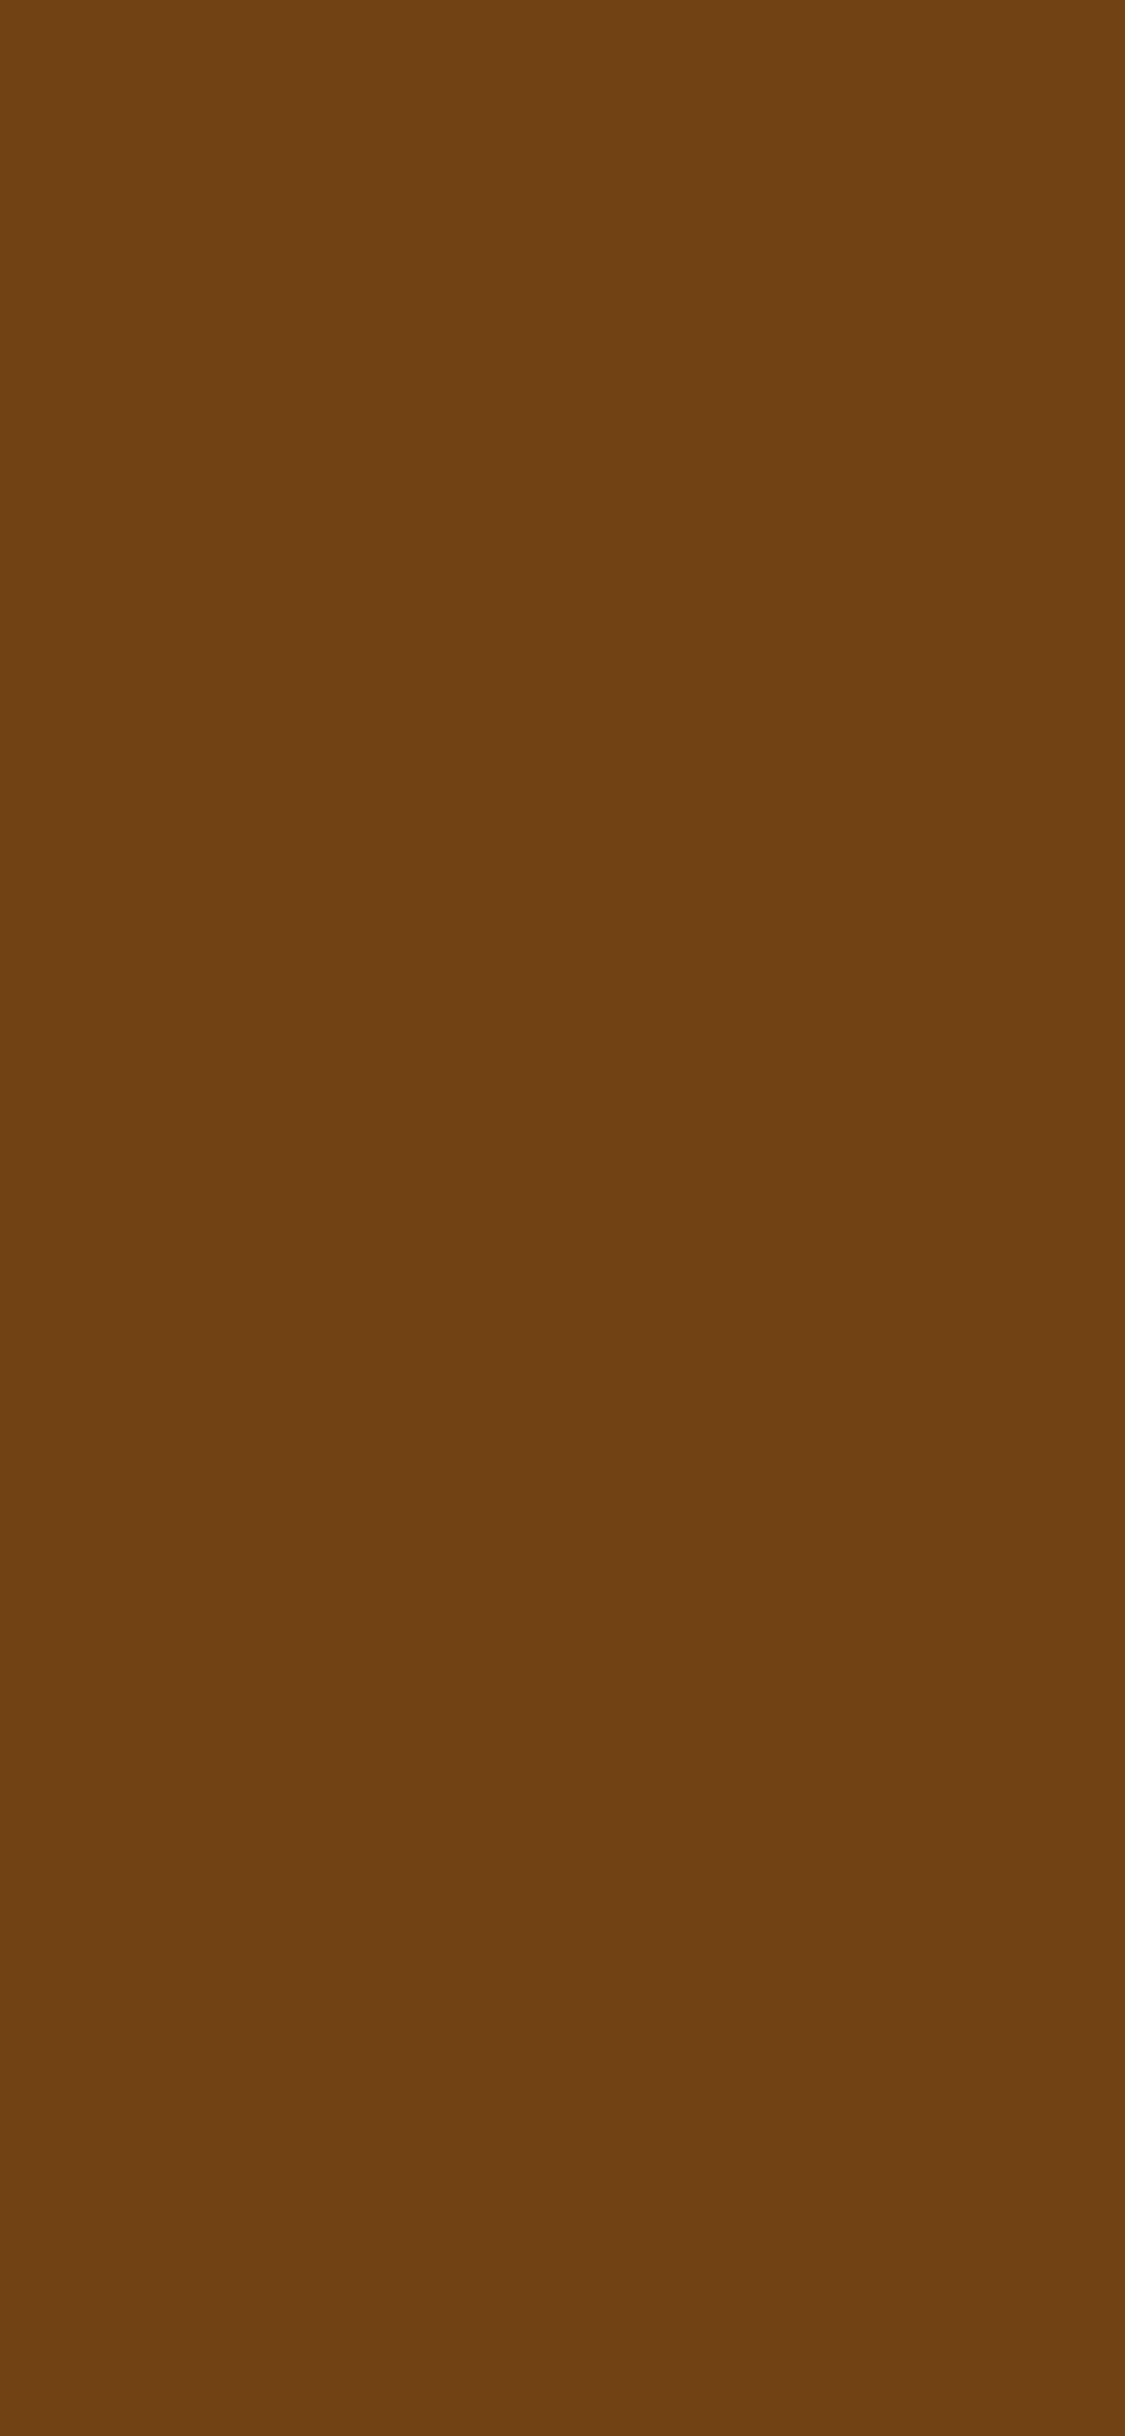 1125x2436 Sepia Solid Color Background